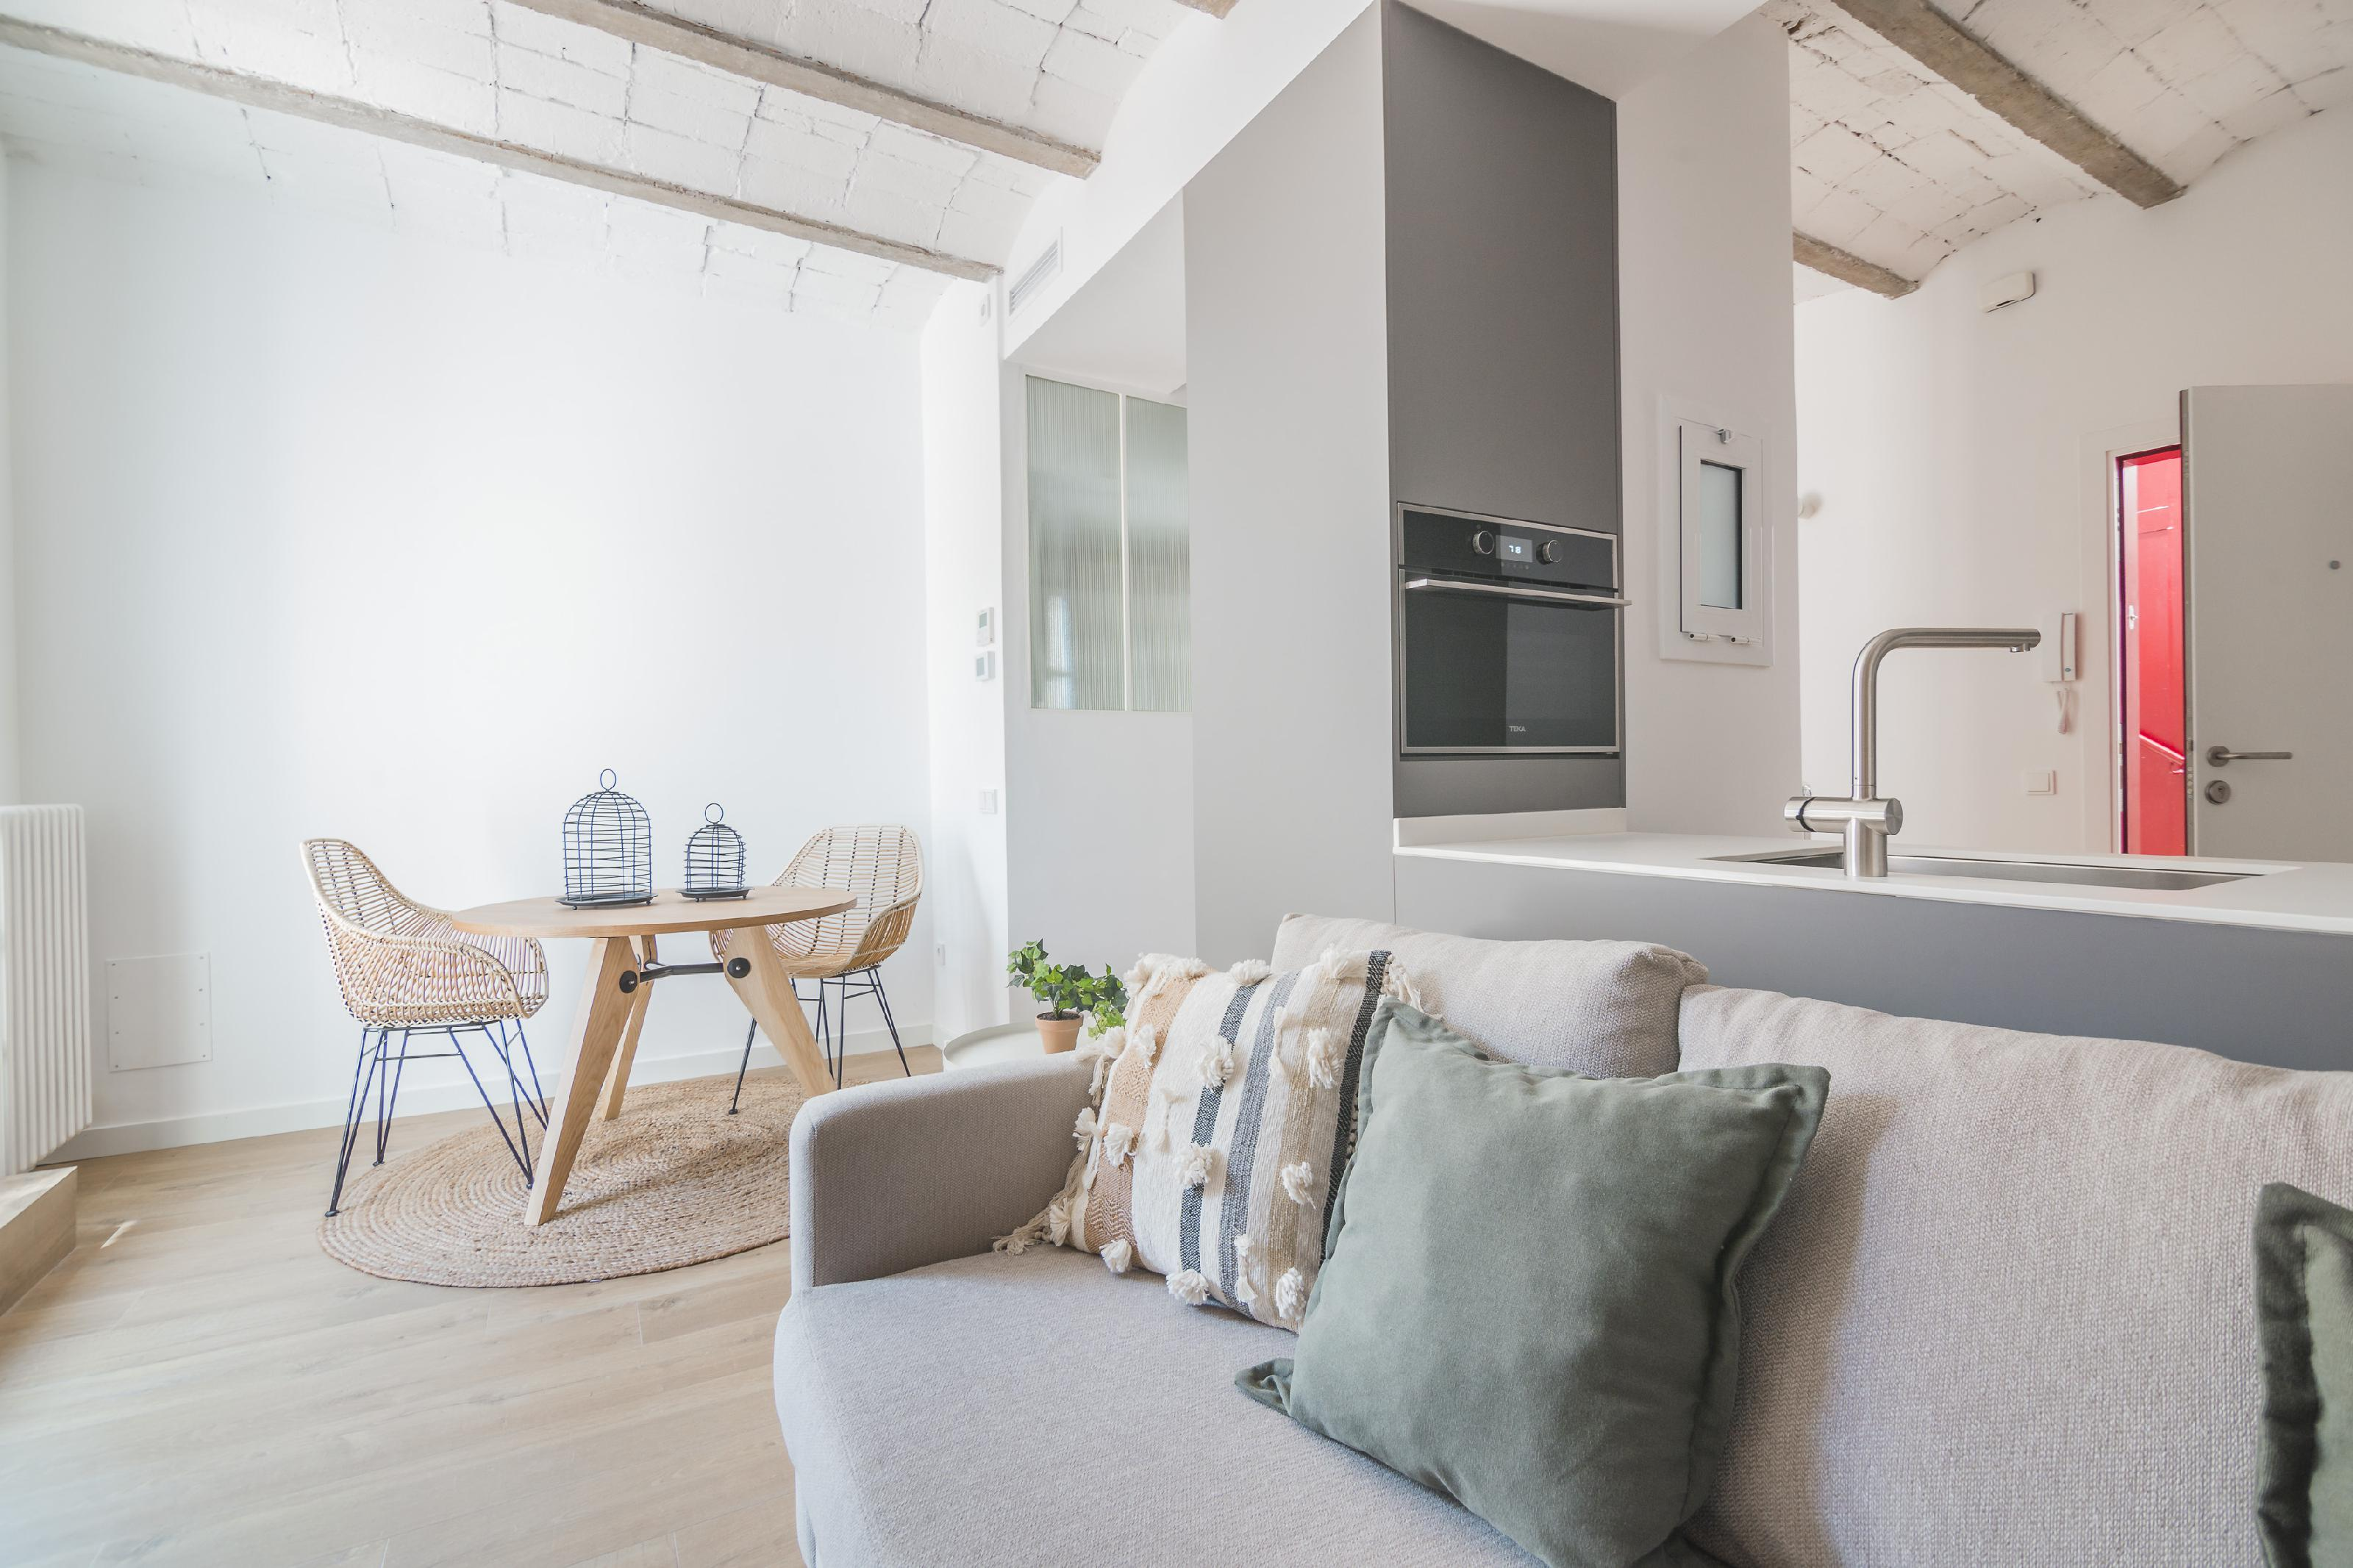 240301 Flat for sale in Gràcia, Camp Grassot and Gràcia Nova 10